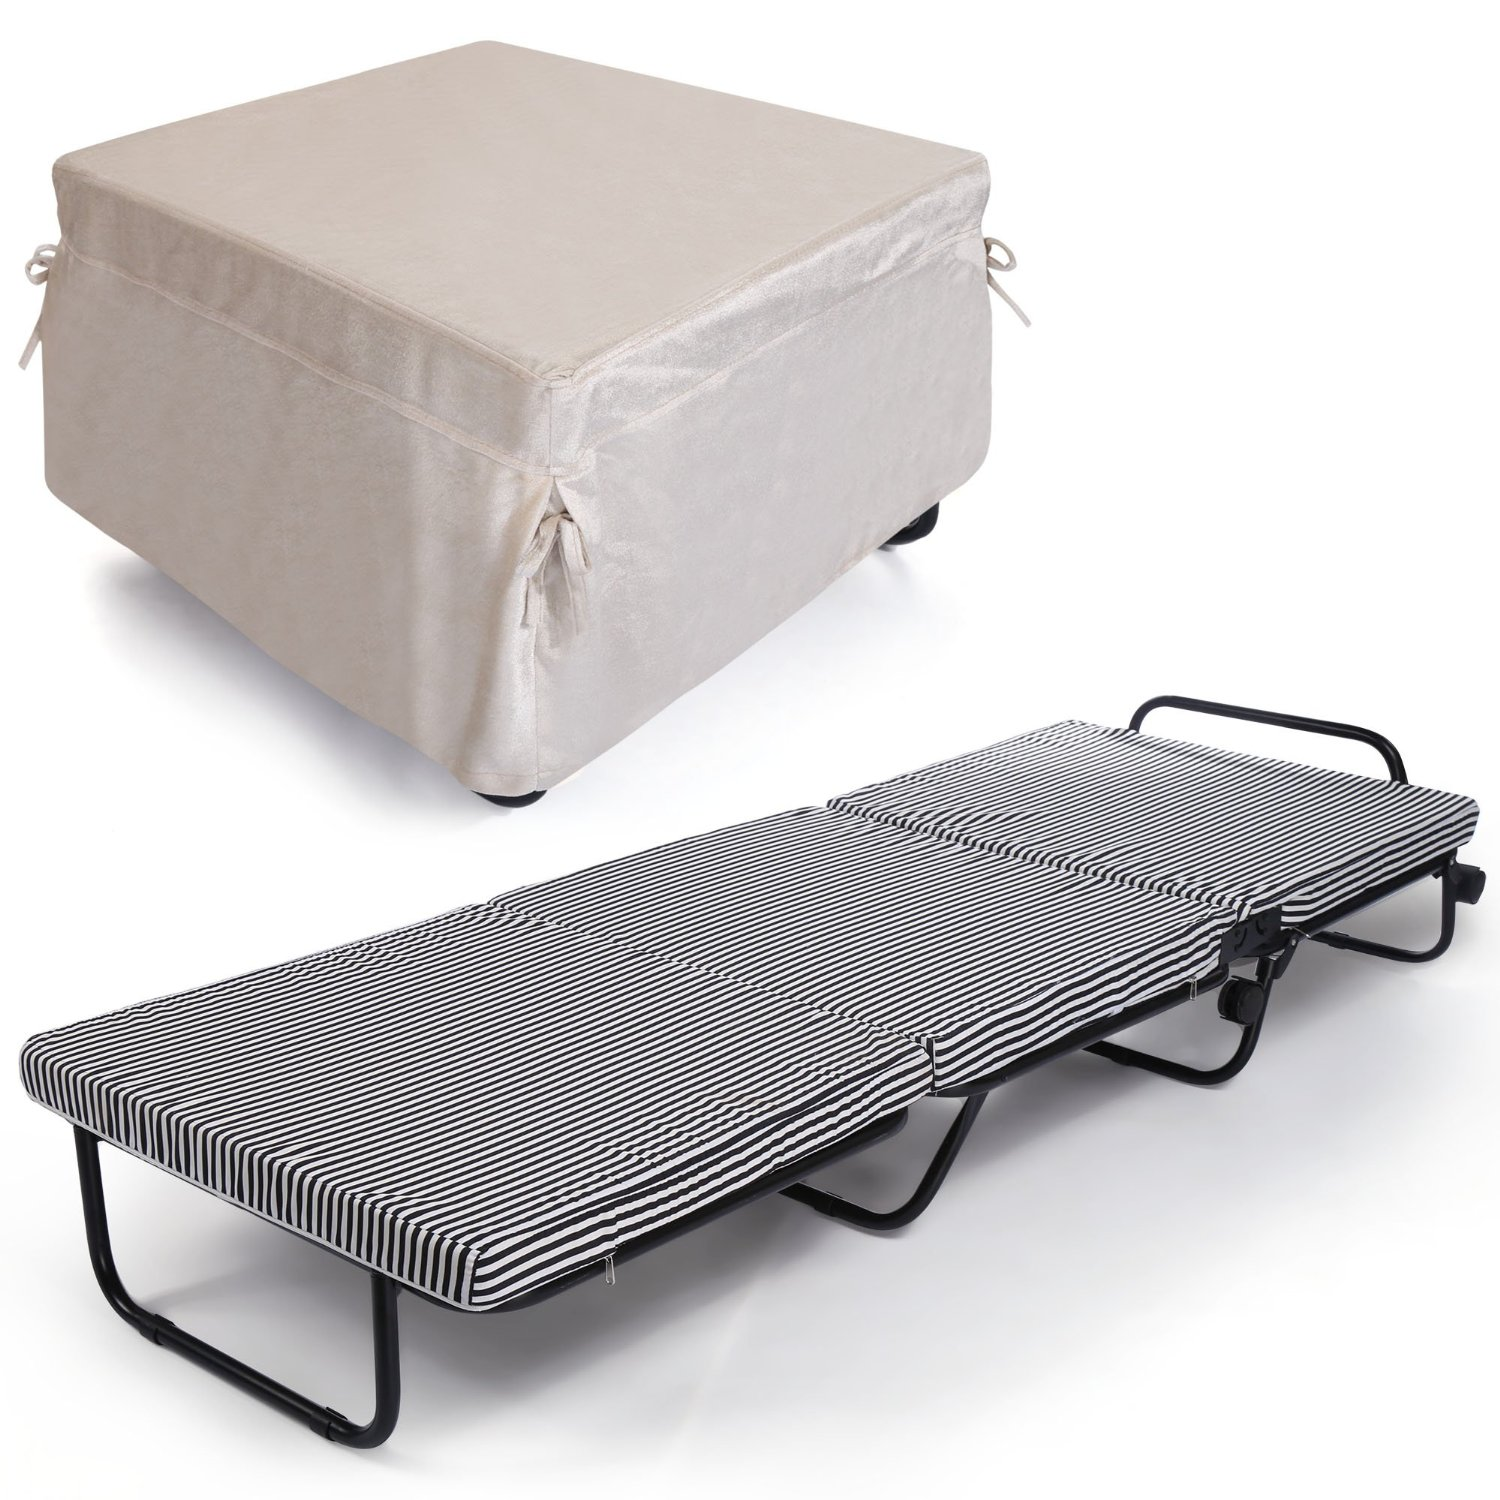 Buy Homdox Folding Bed, Tri-Fold Portable Sleeping Cot With Memory ...